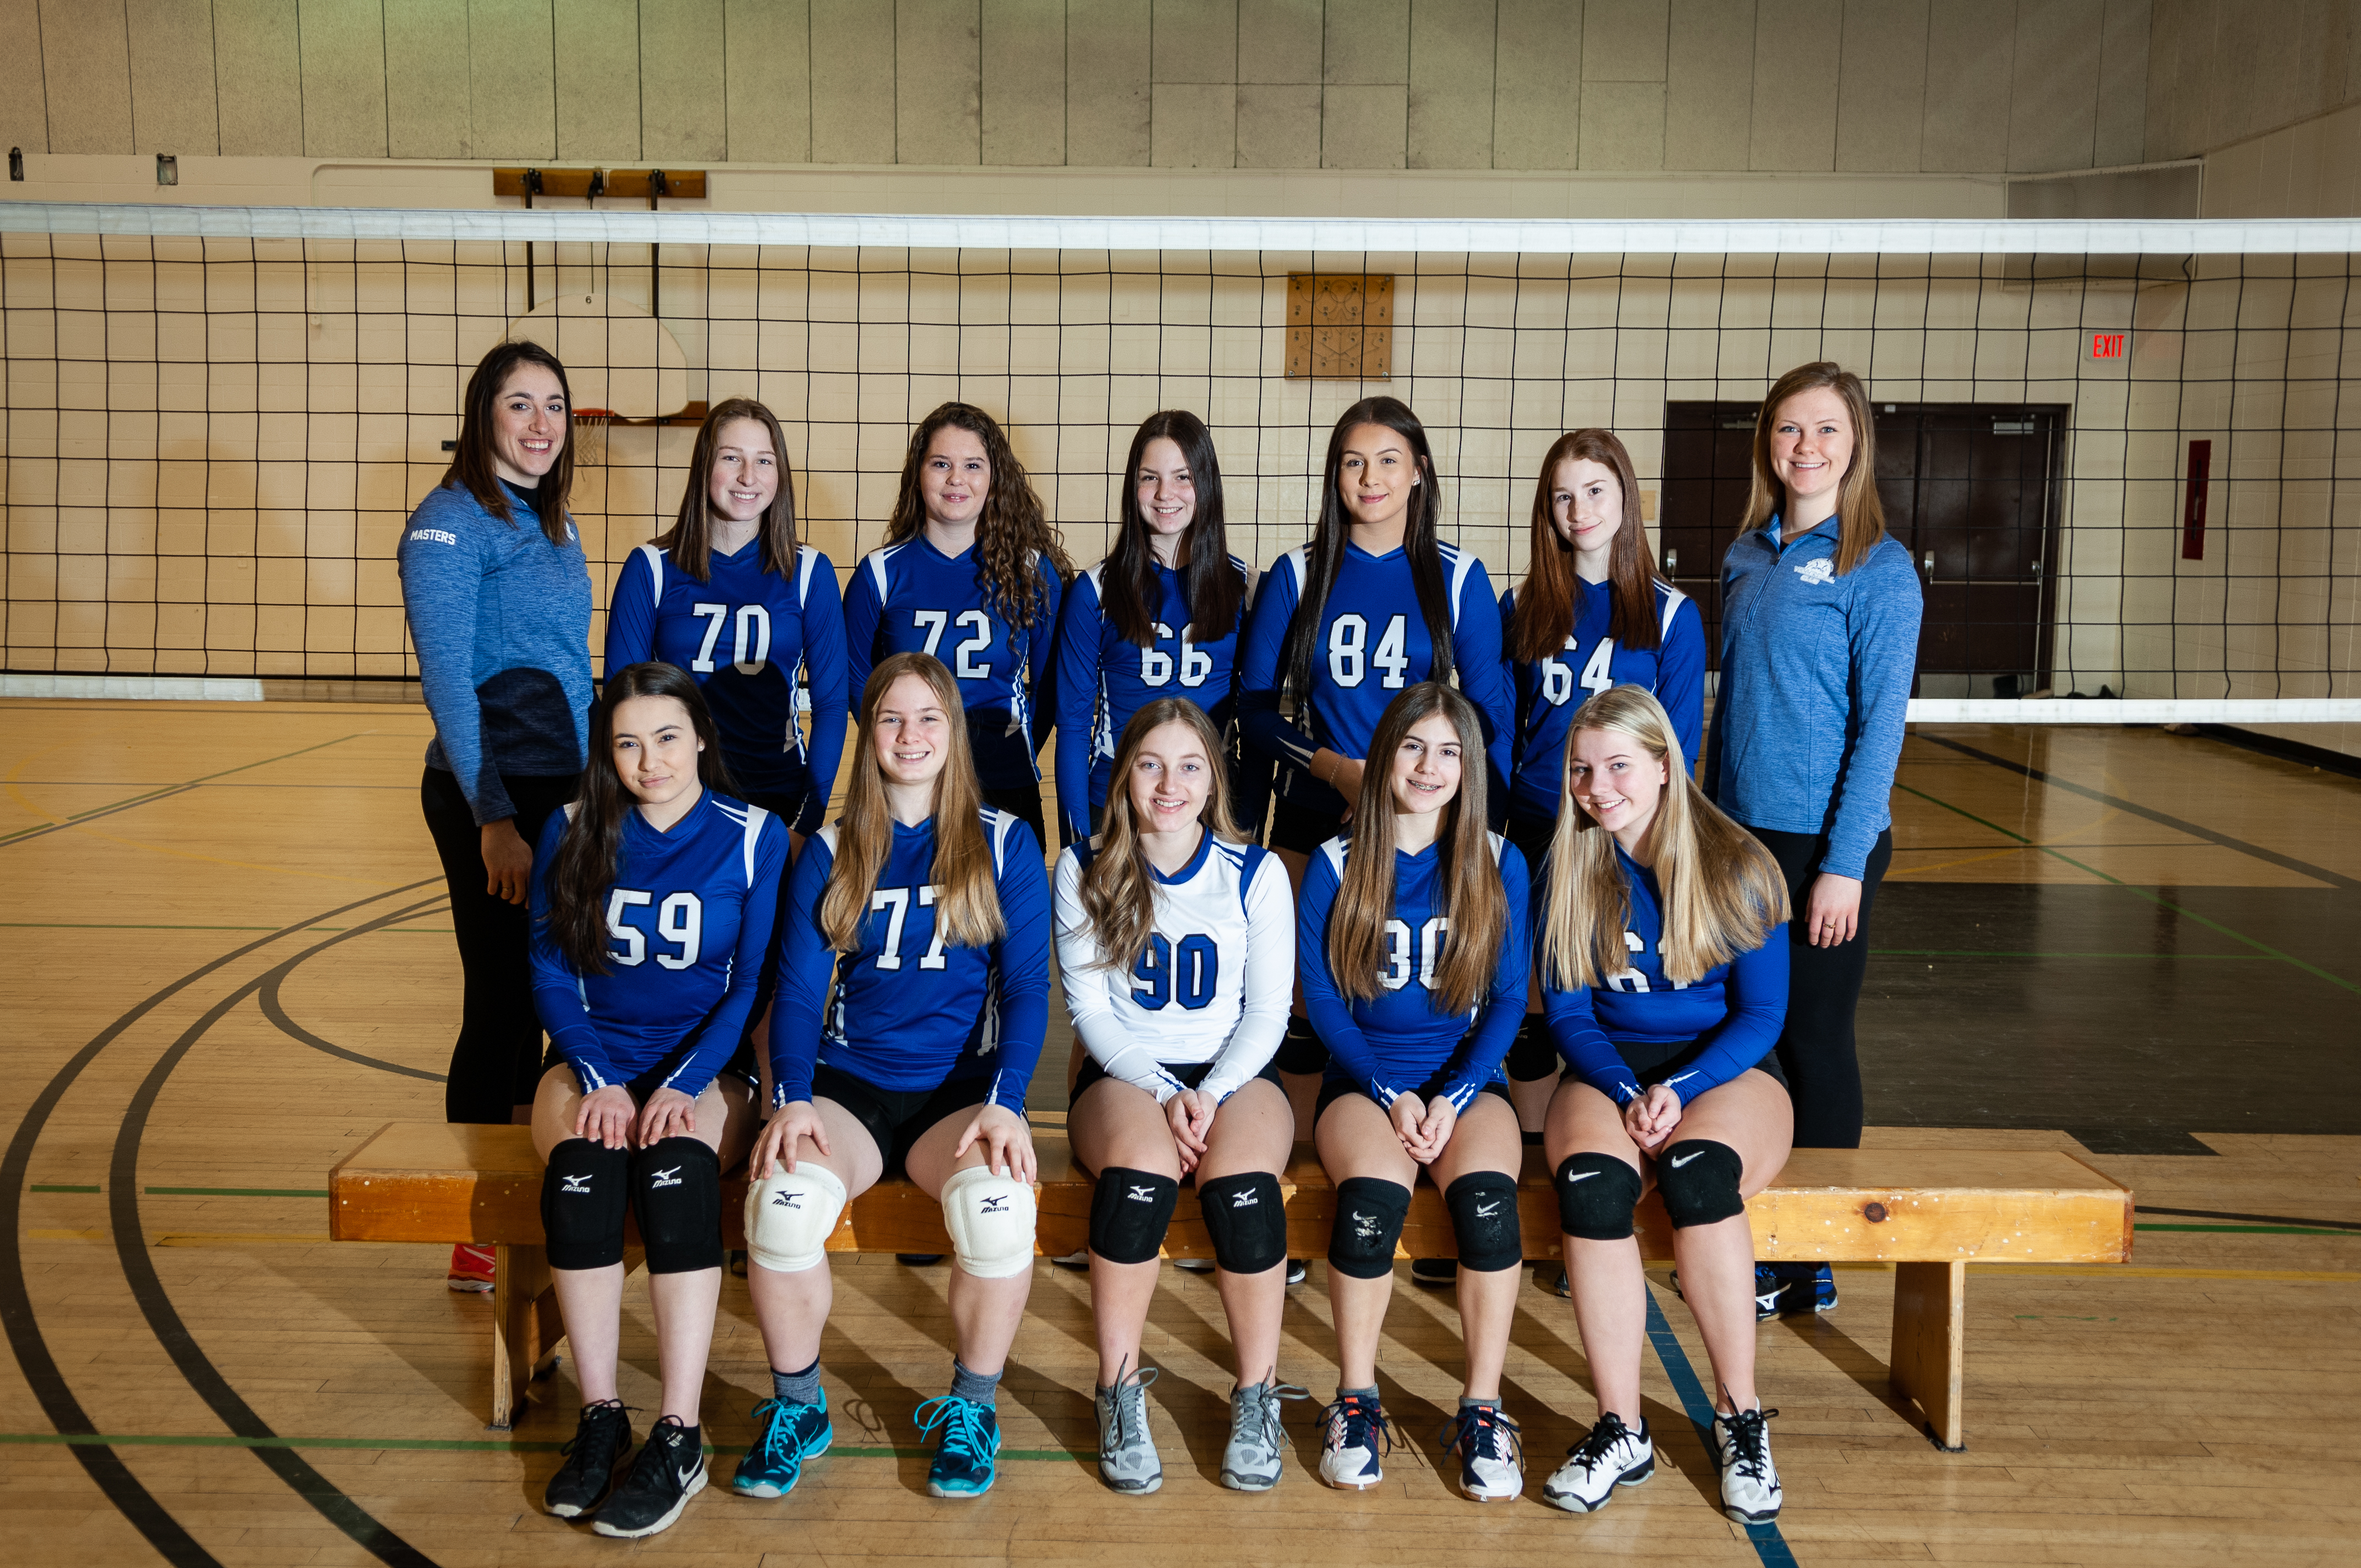 Snvc Superior North Volleyball Club